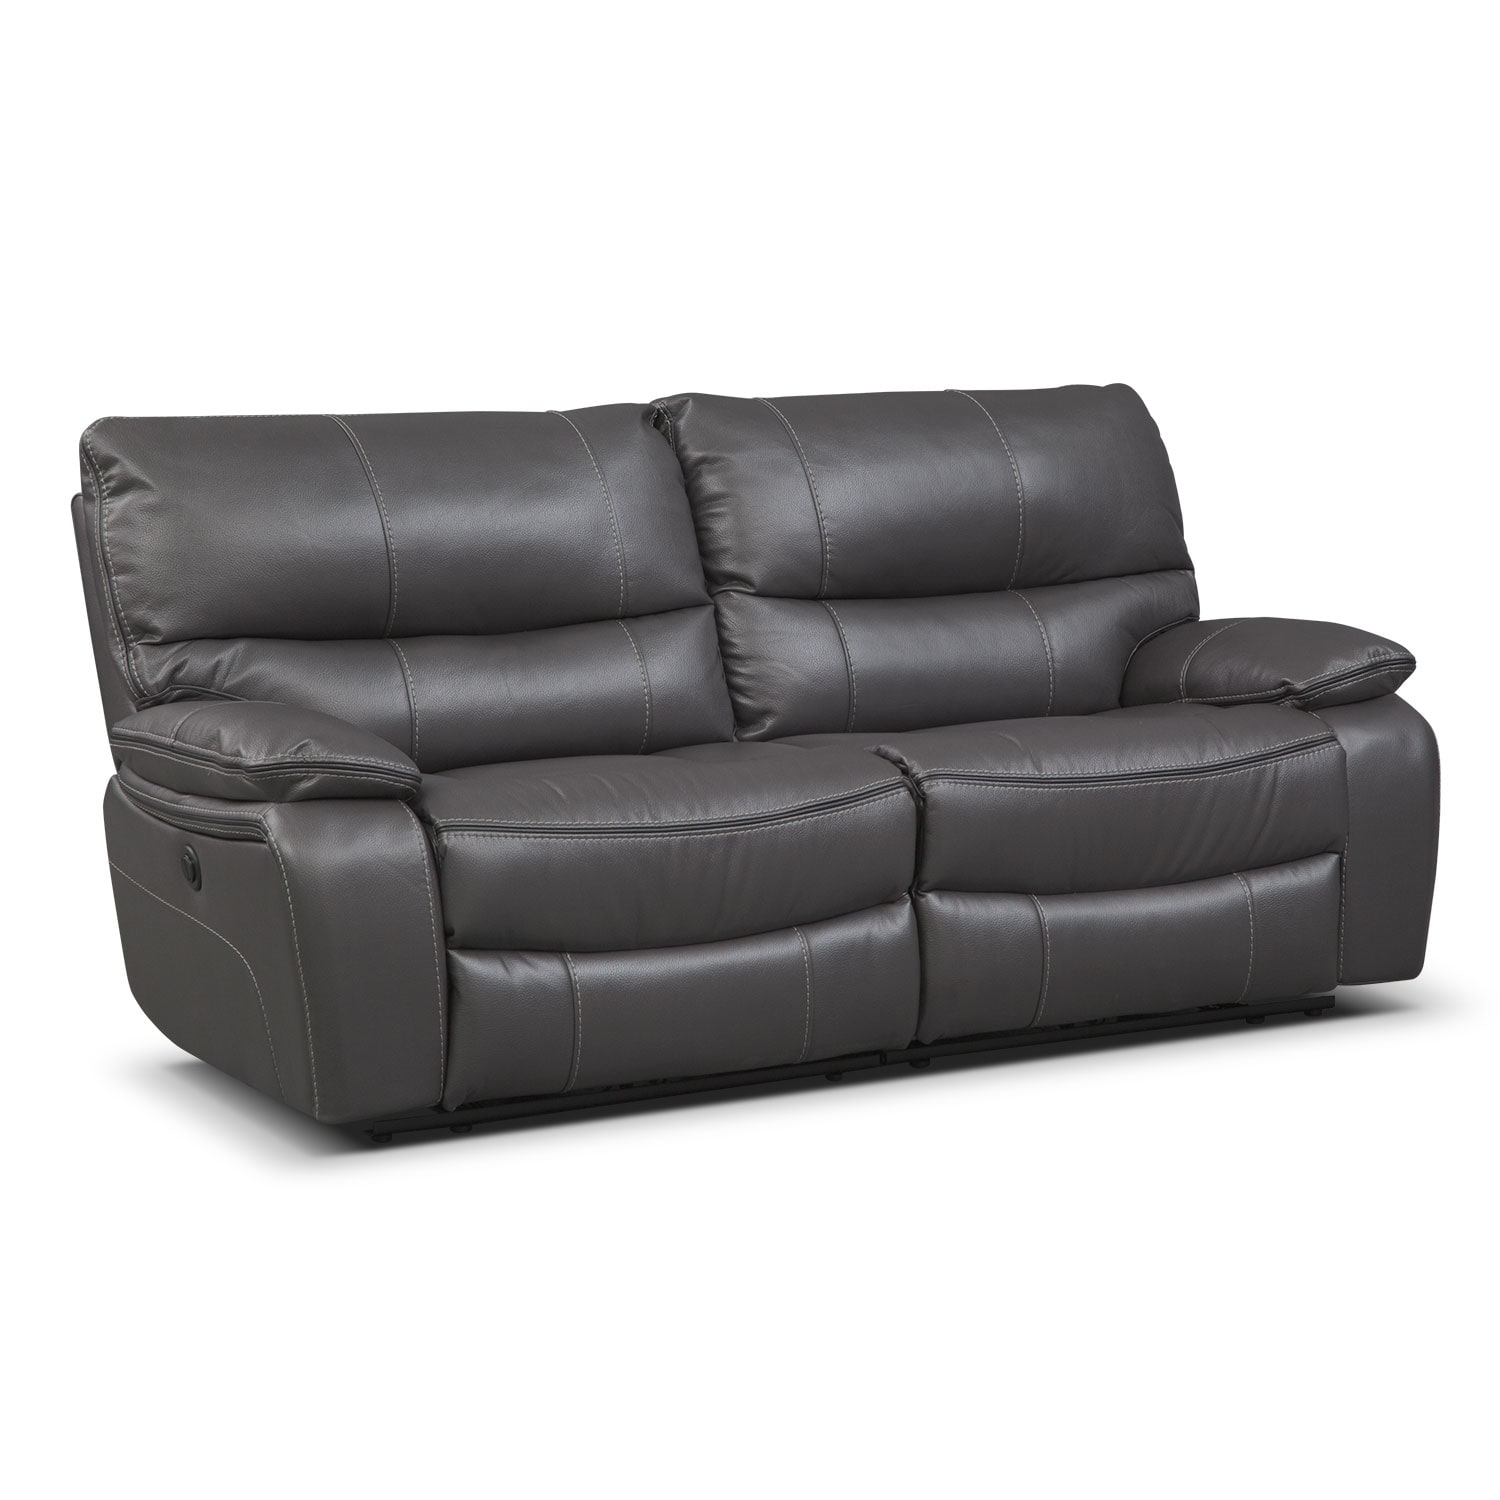 Orlando Power Reclining Sofa   Gray